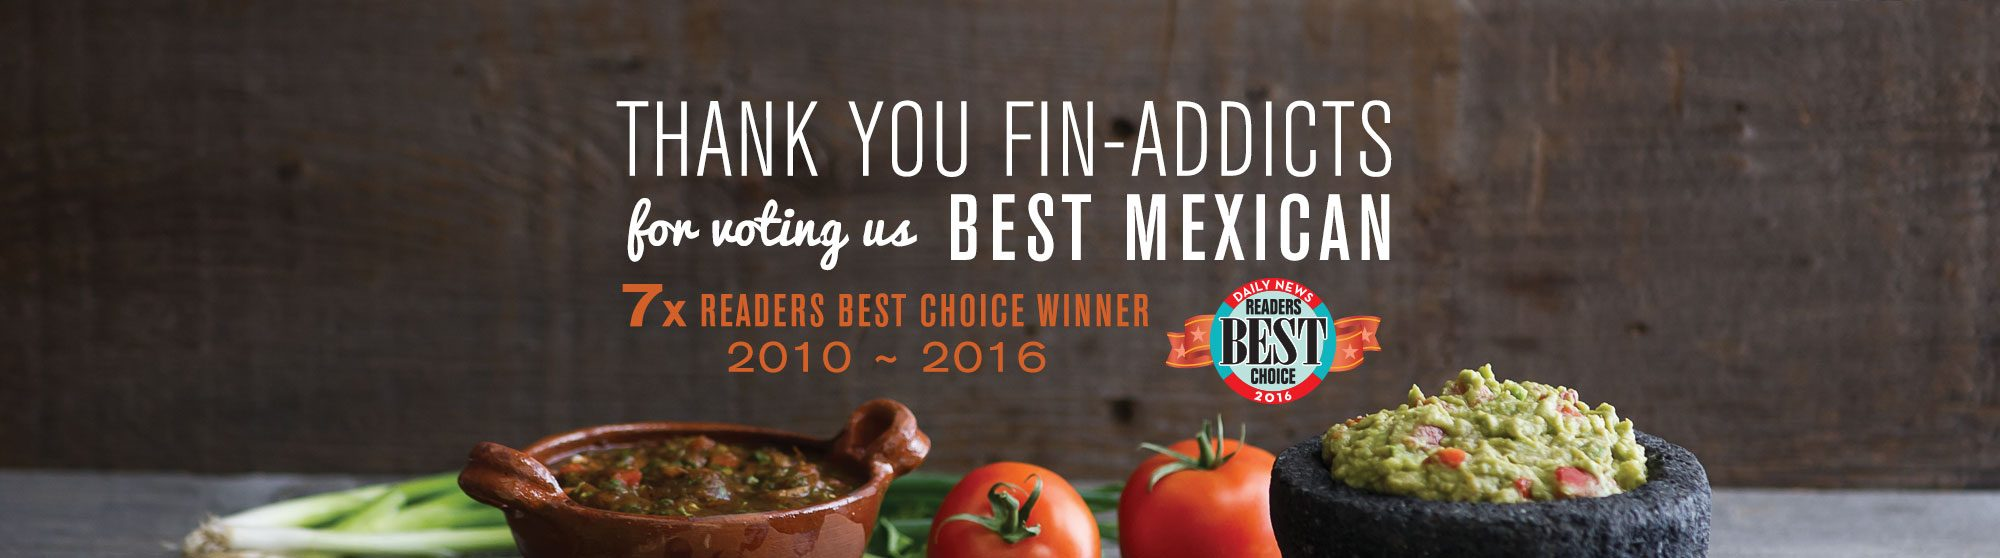 7x Readers Choice Winner - Best Mexican